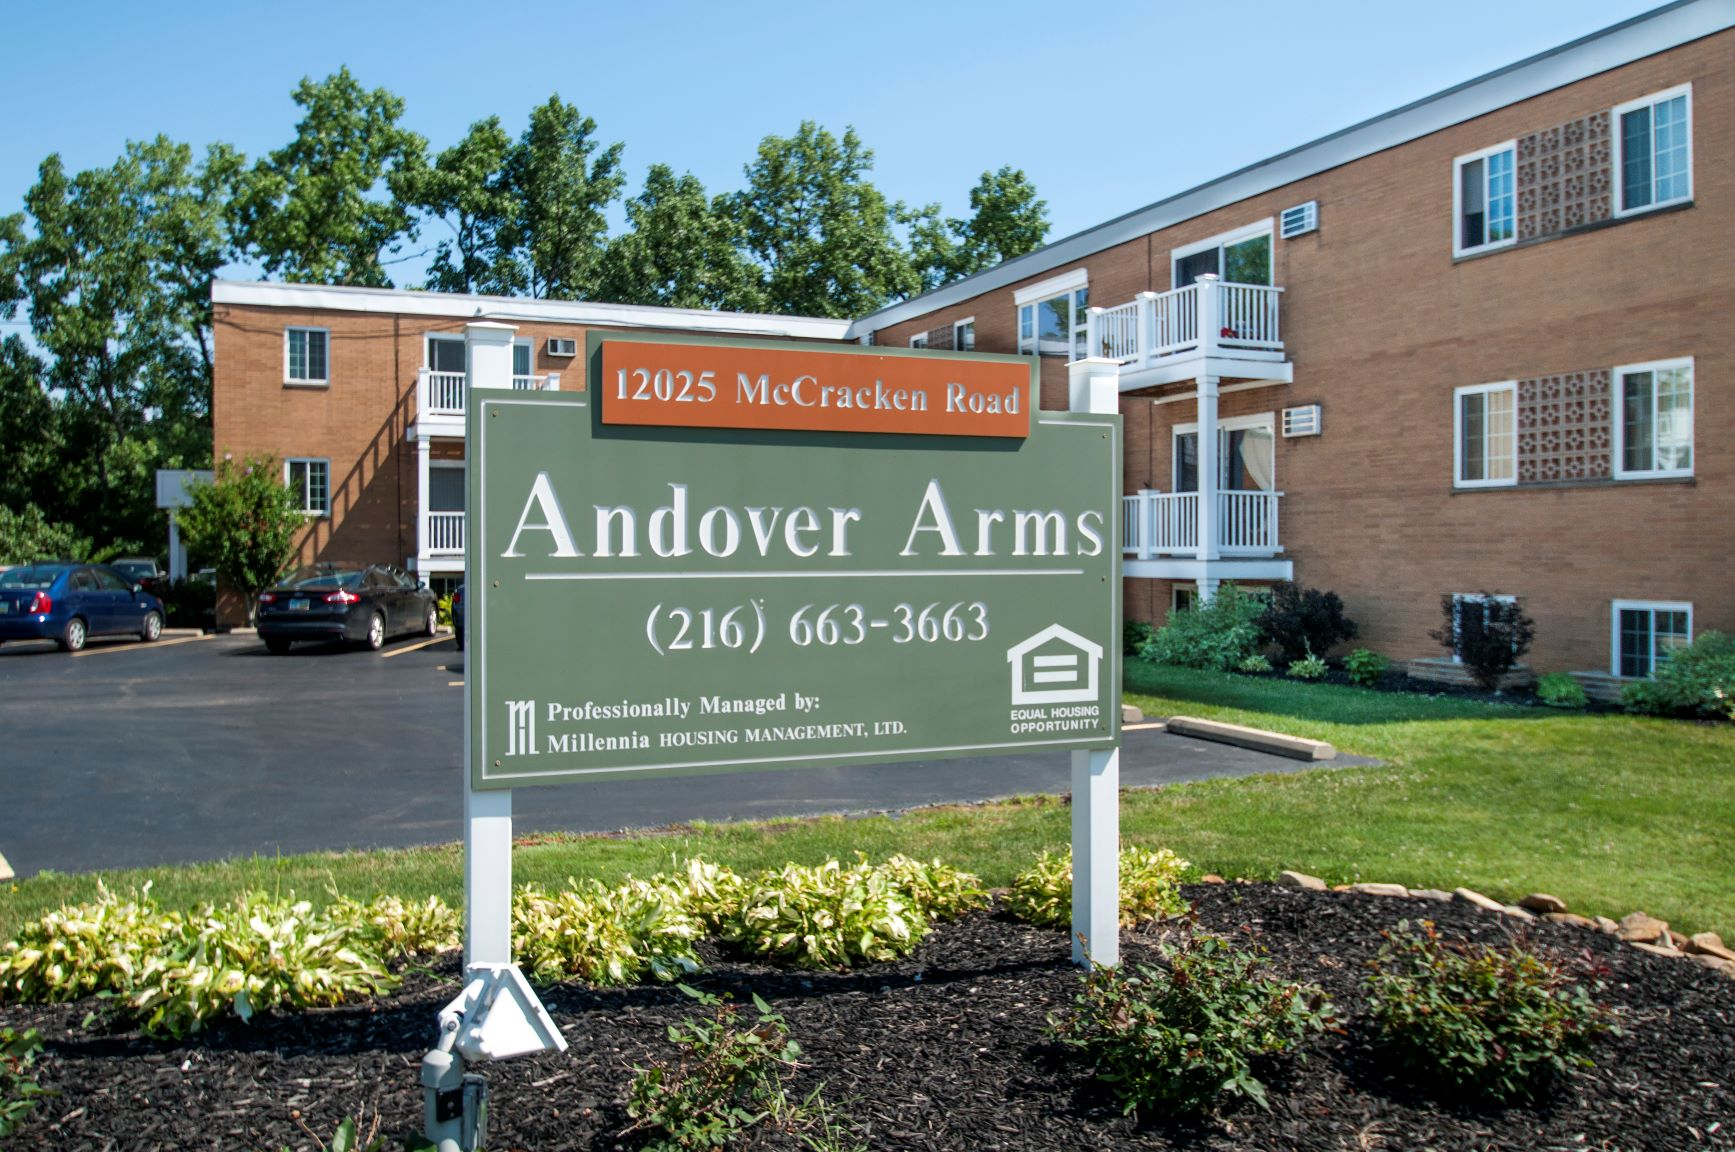 Andover Arms Apartment Sign